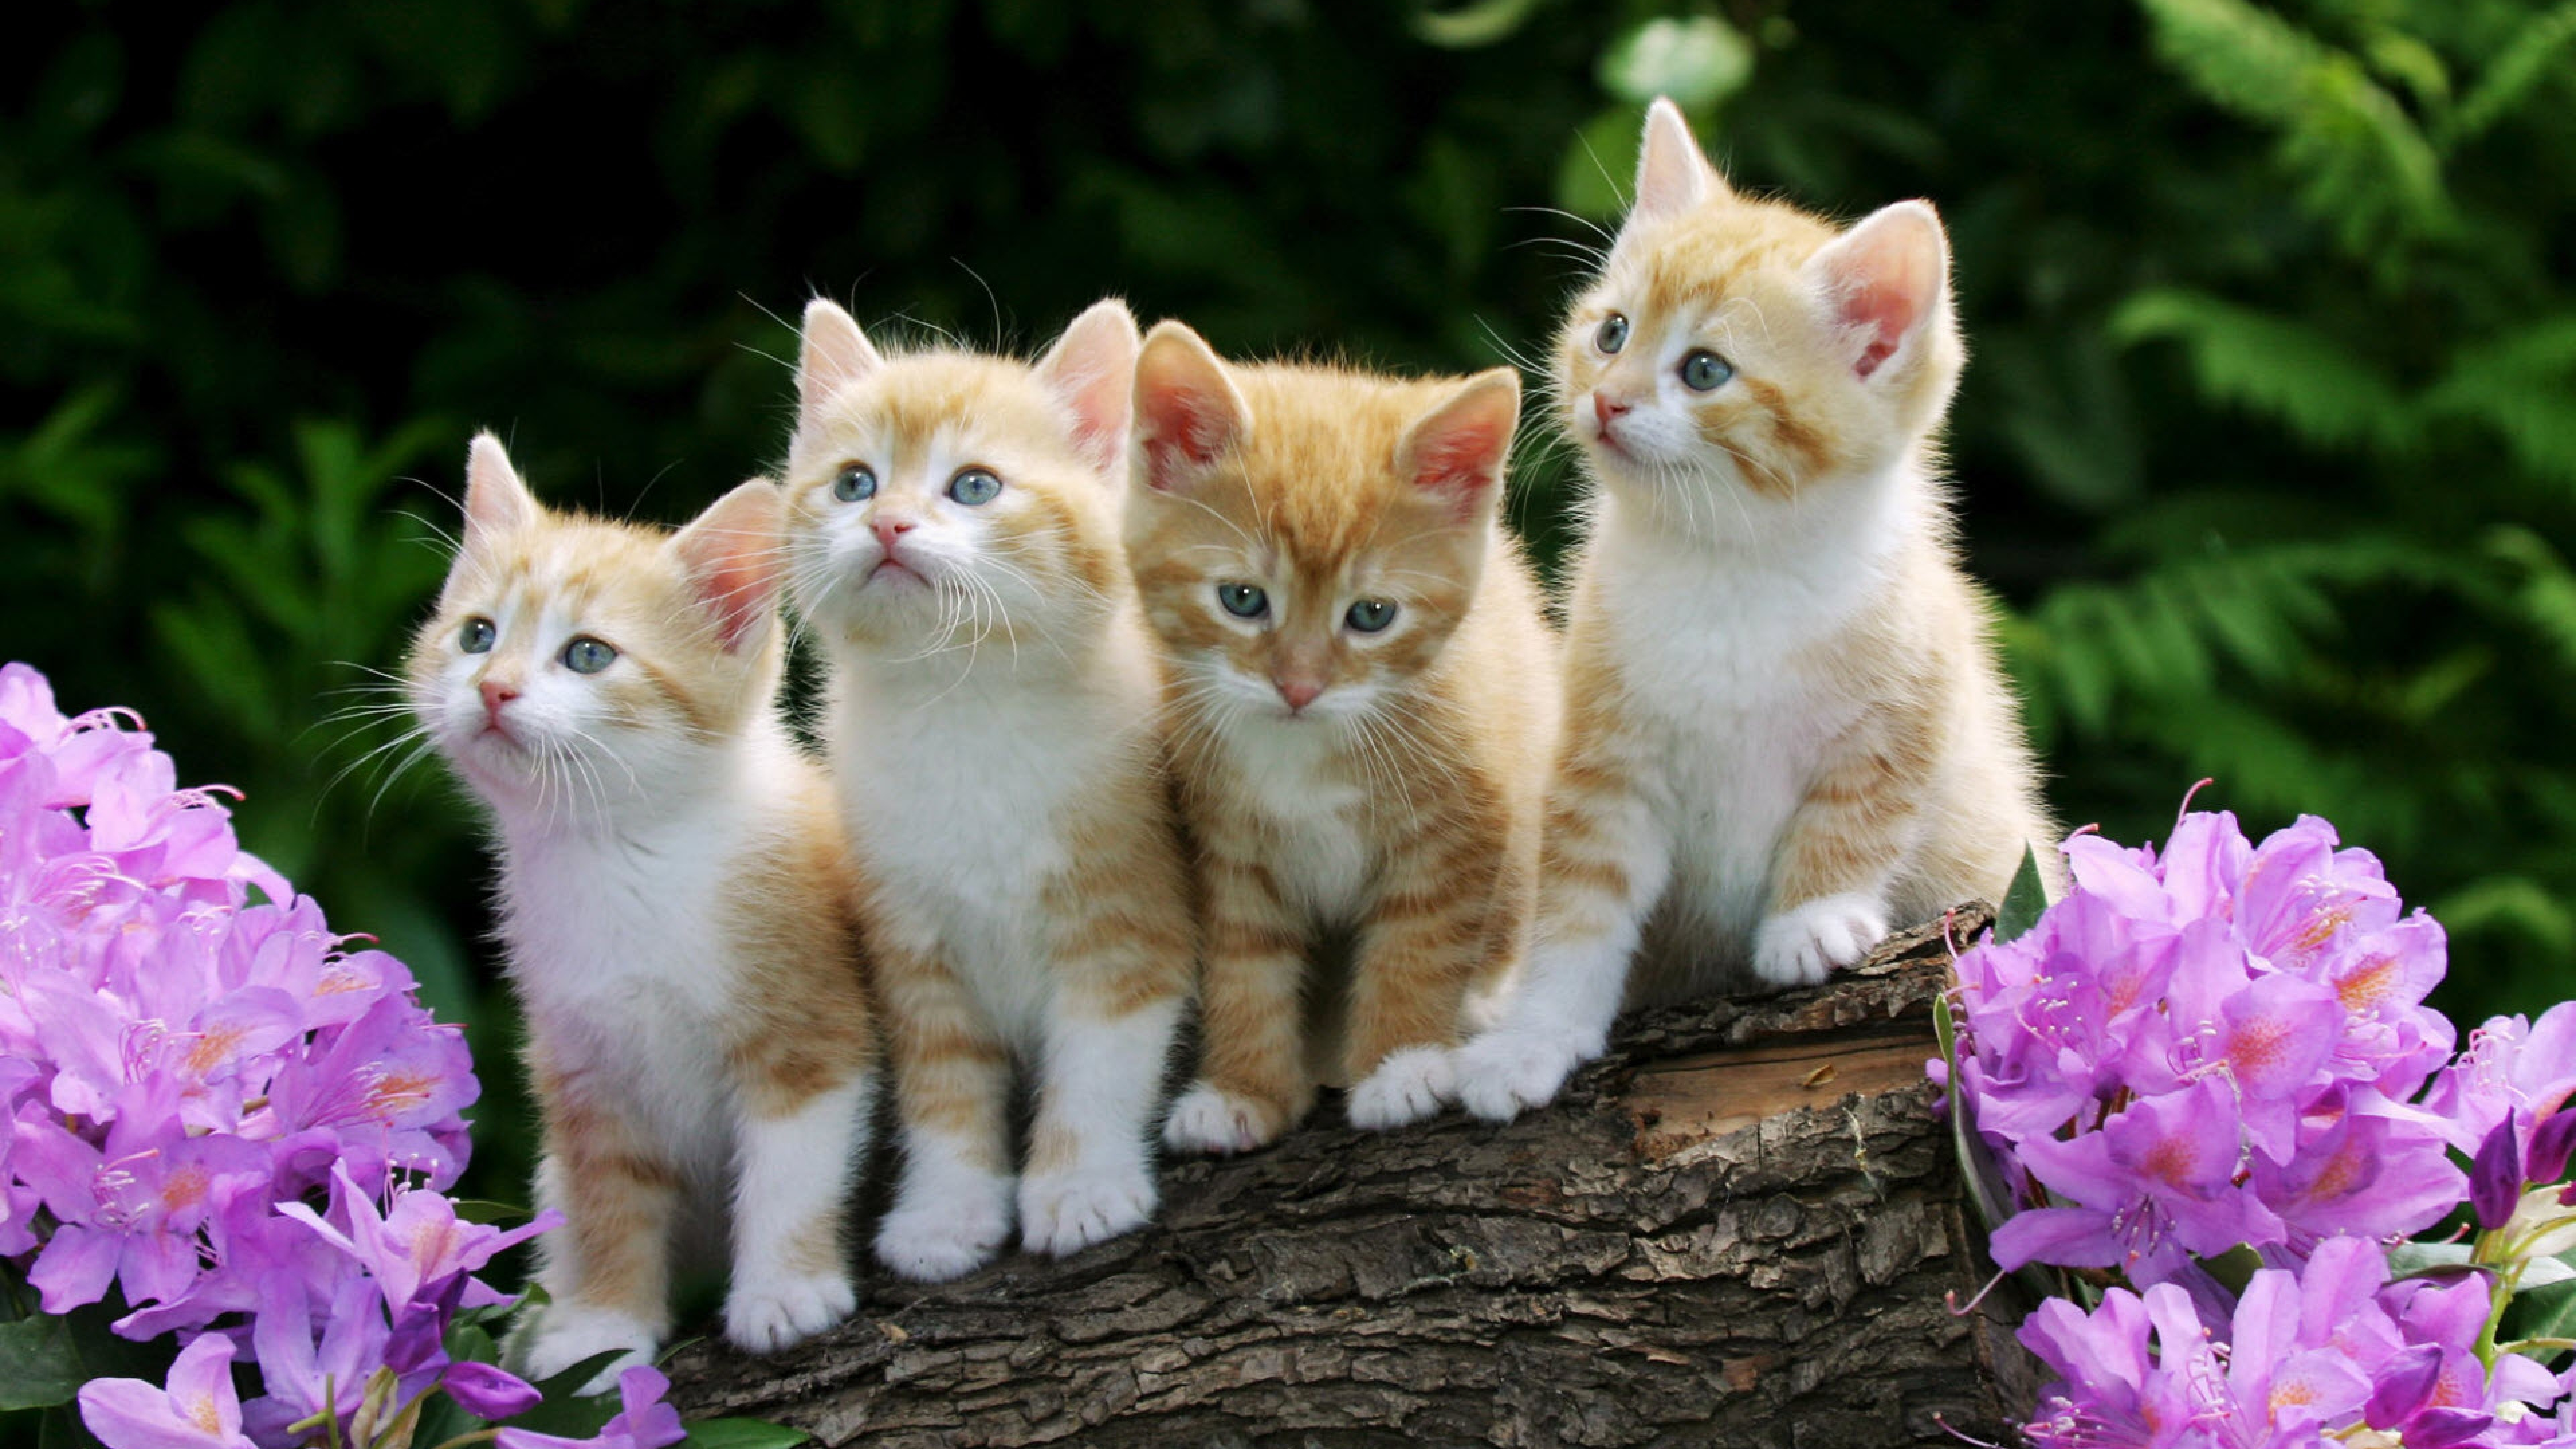 Cute Kittens Photos Wallpaper 4k Ultra Hd